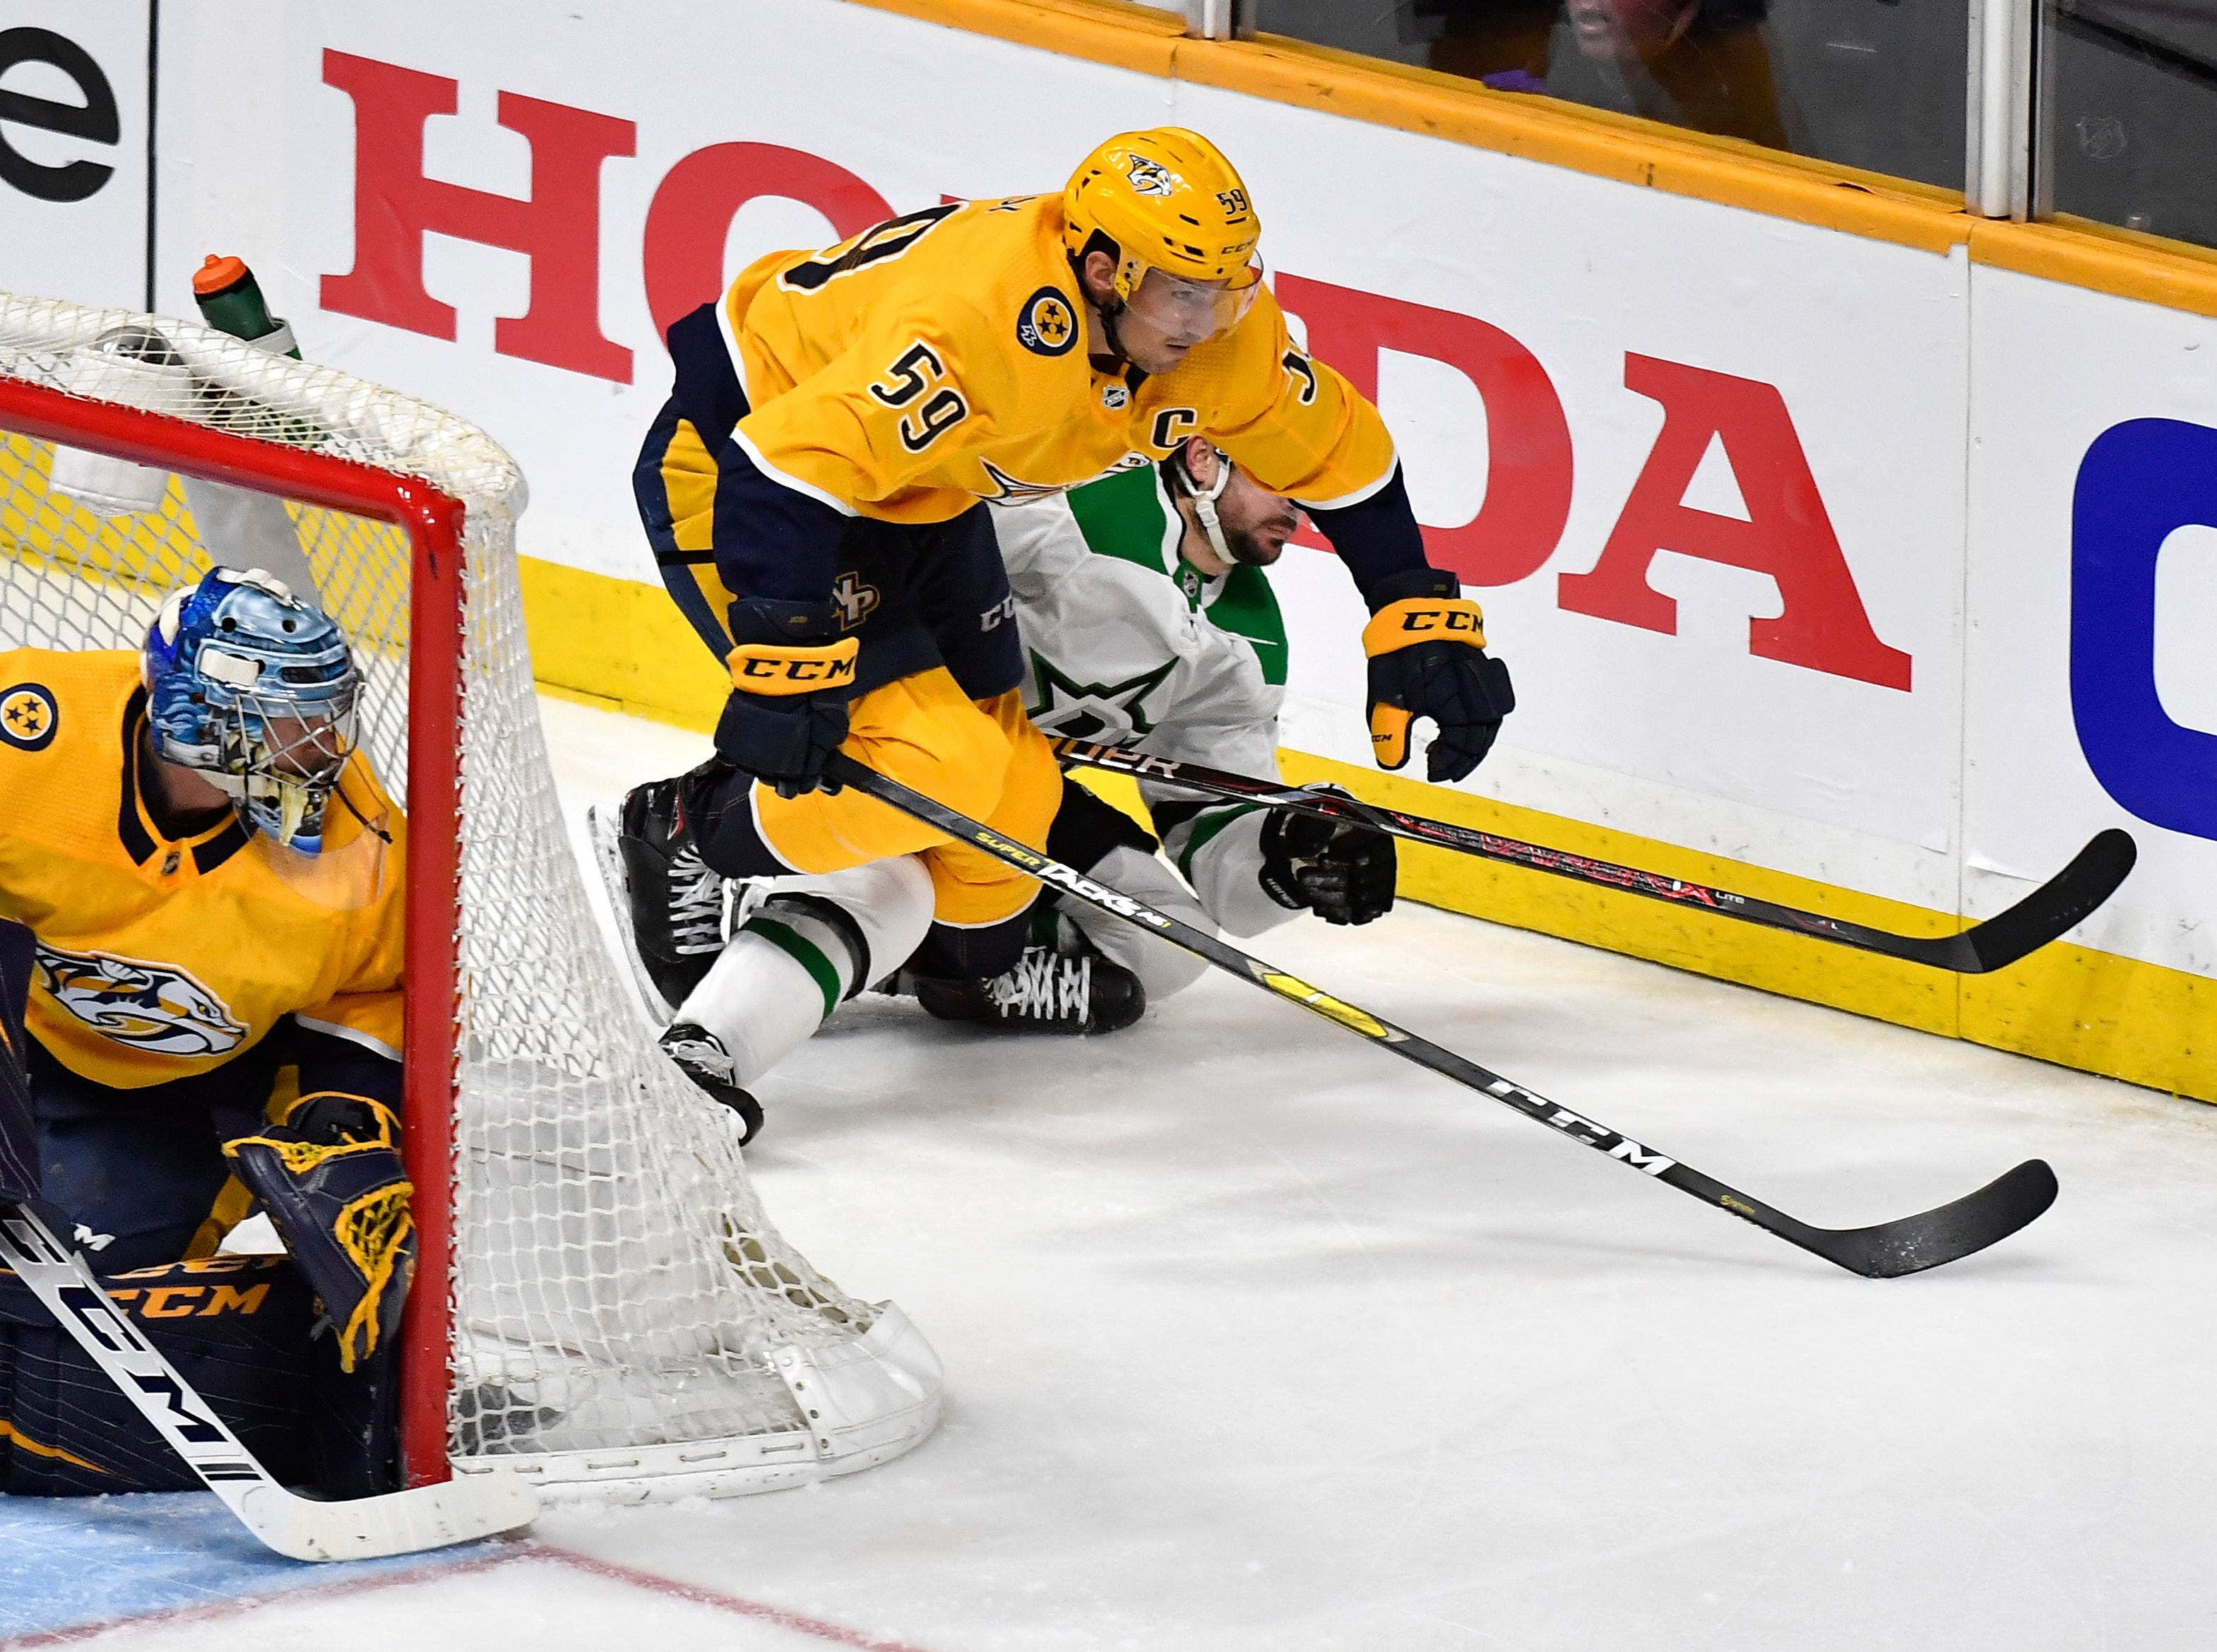 Nashville Predators defenseman Roman Josi (59) and Dallas Stars center Mats Zuccarello (36) battle for the puck behind Nashville Predators goaltender Pekka Rinne (35) during the second period of the divisional semifinal game at Bridgestone Arena in Nashville, Tenn., Wednesday, April 10, 2019.